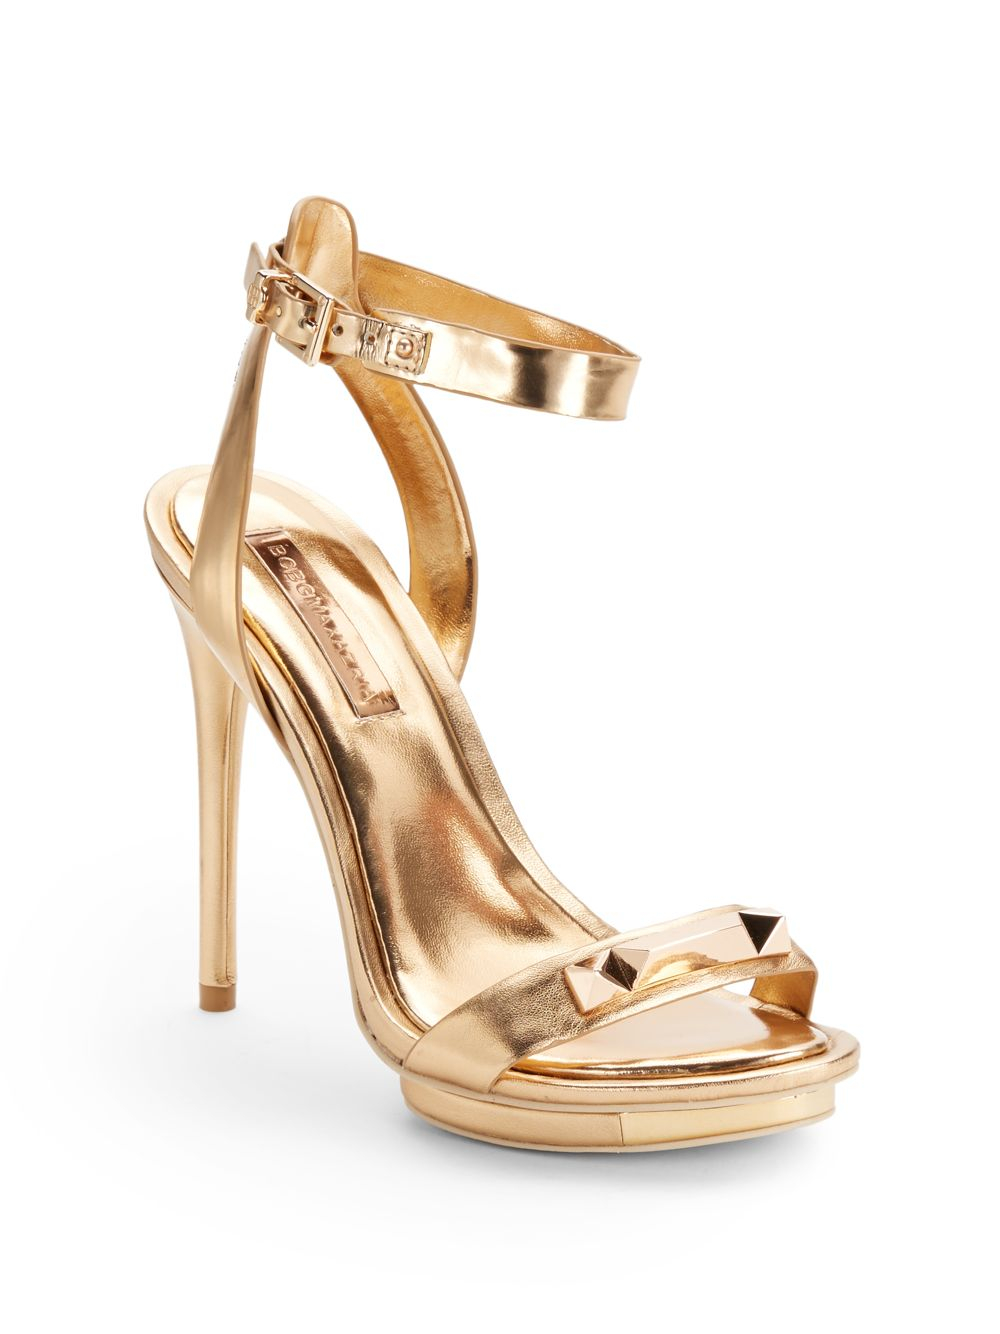 bcbgmaxazria-gold-freesia-metallic-leather-high-heel-sandals-product-1-19694064-0-247916177-normal.jpeg